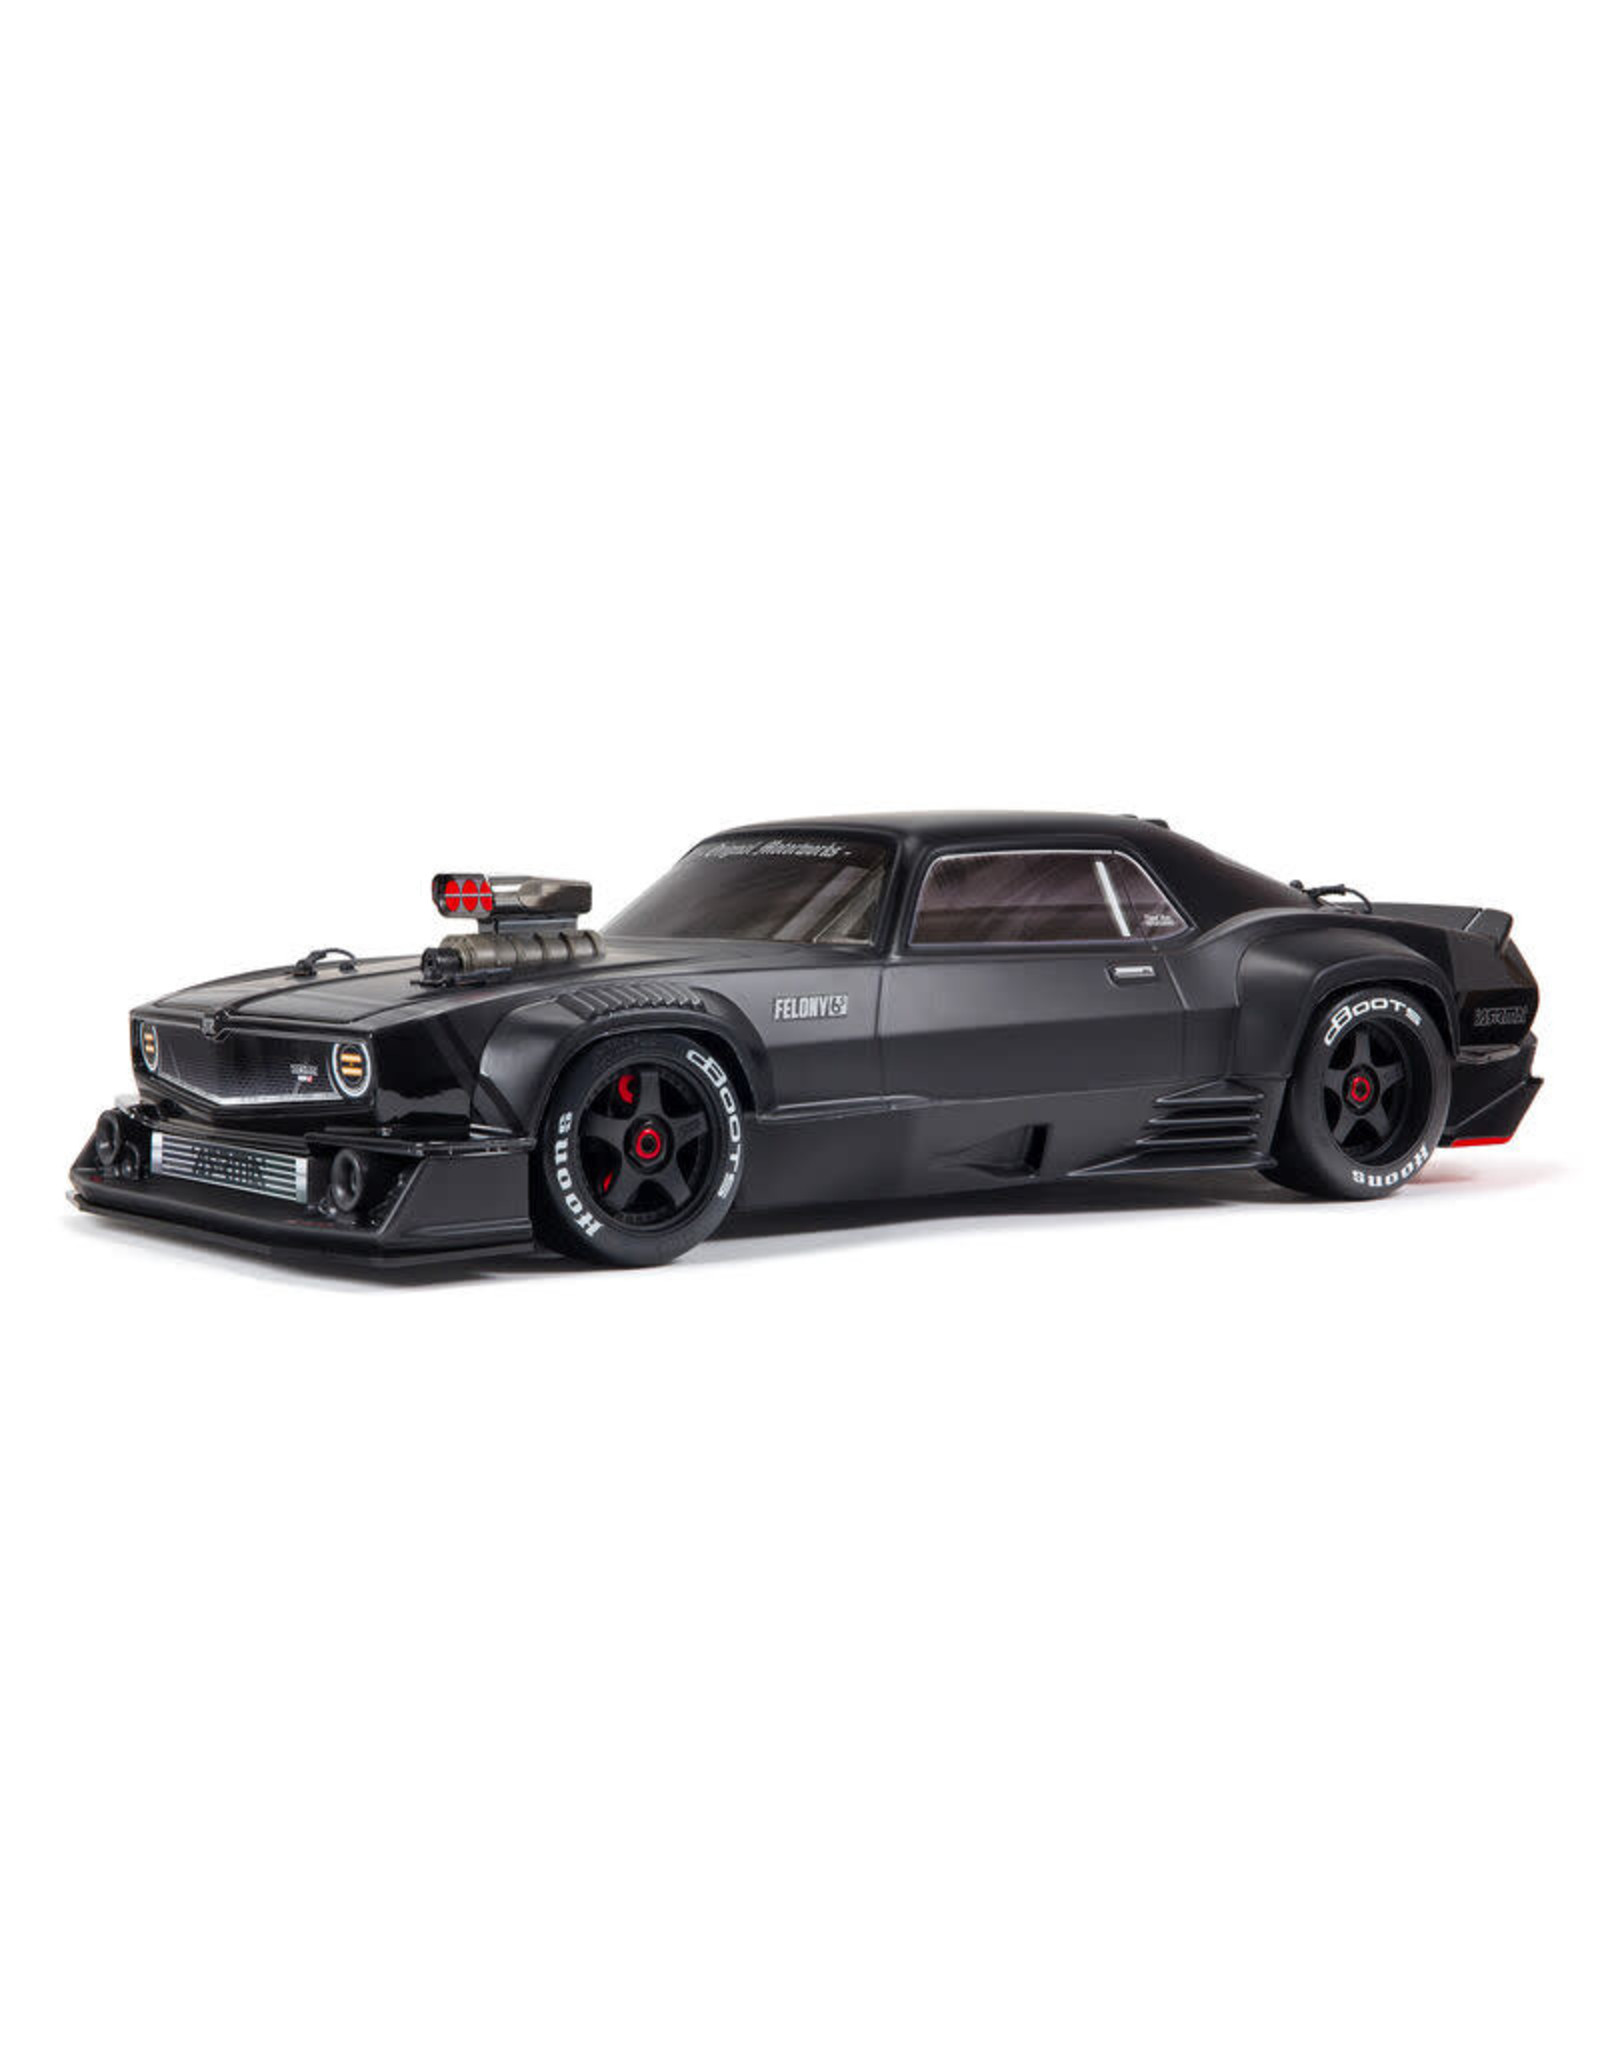 Arrma 1/7 FELONY All-Road Muscle Bash 6S BLX with Spektrum RTR with AVC (BLACK)